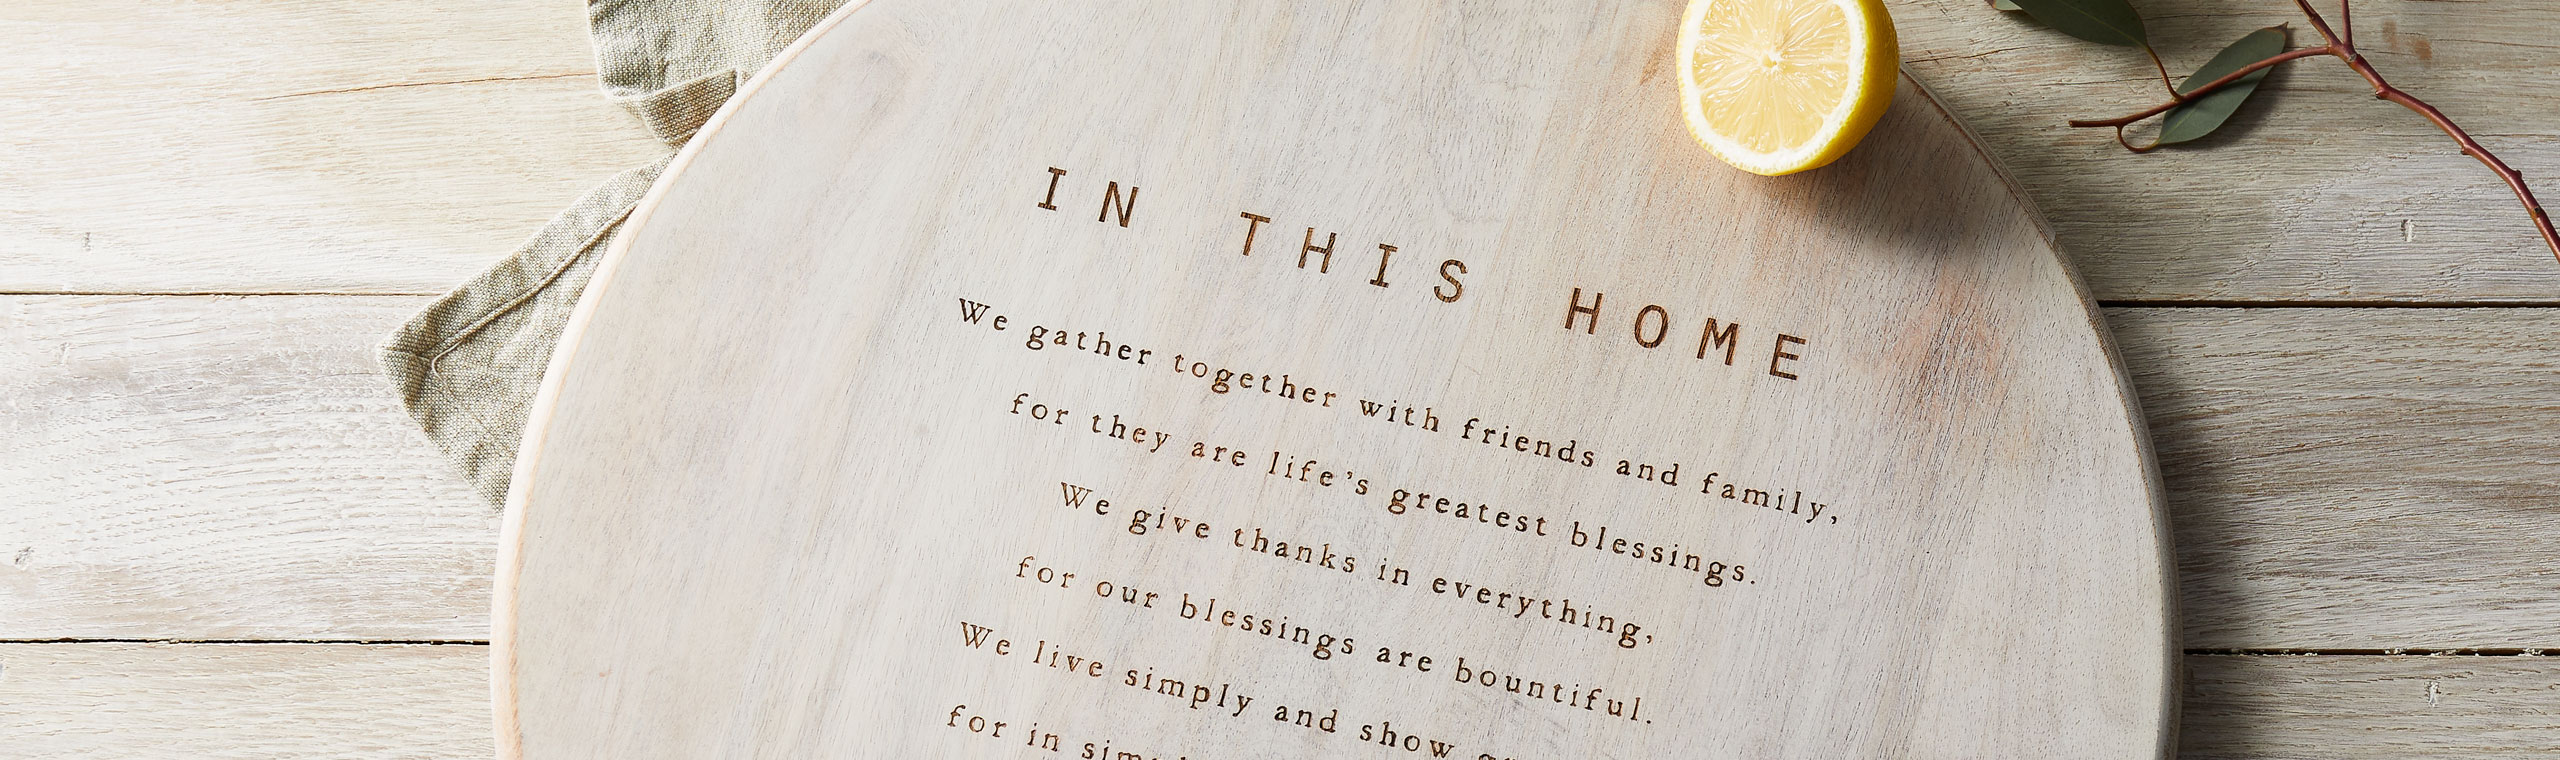 In This Home message engraved on the face of a round light wood platter on wooden table